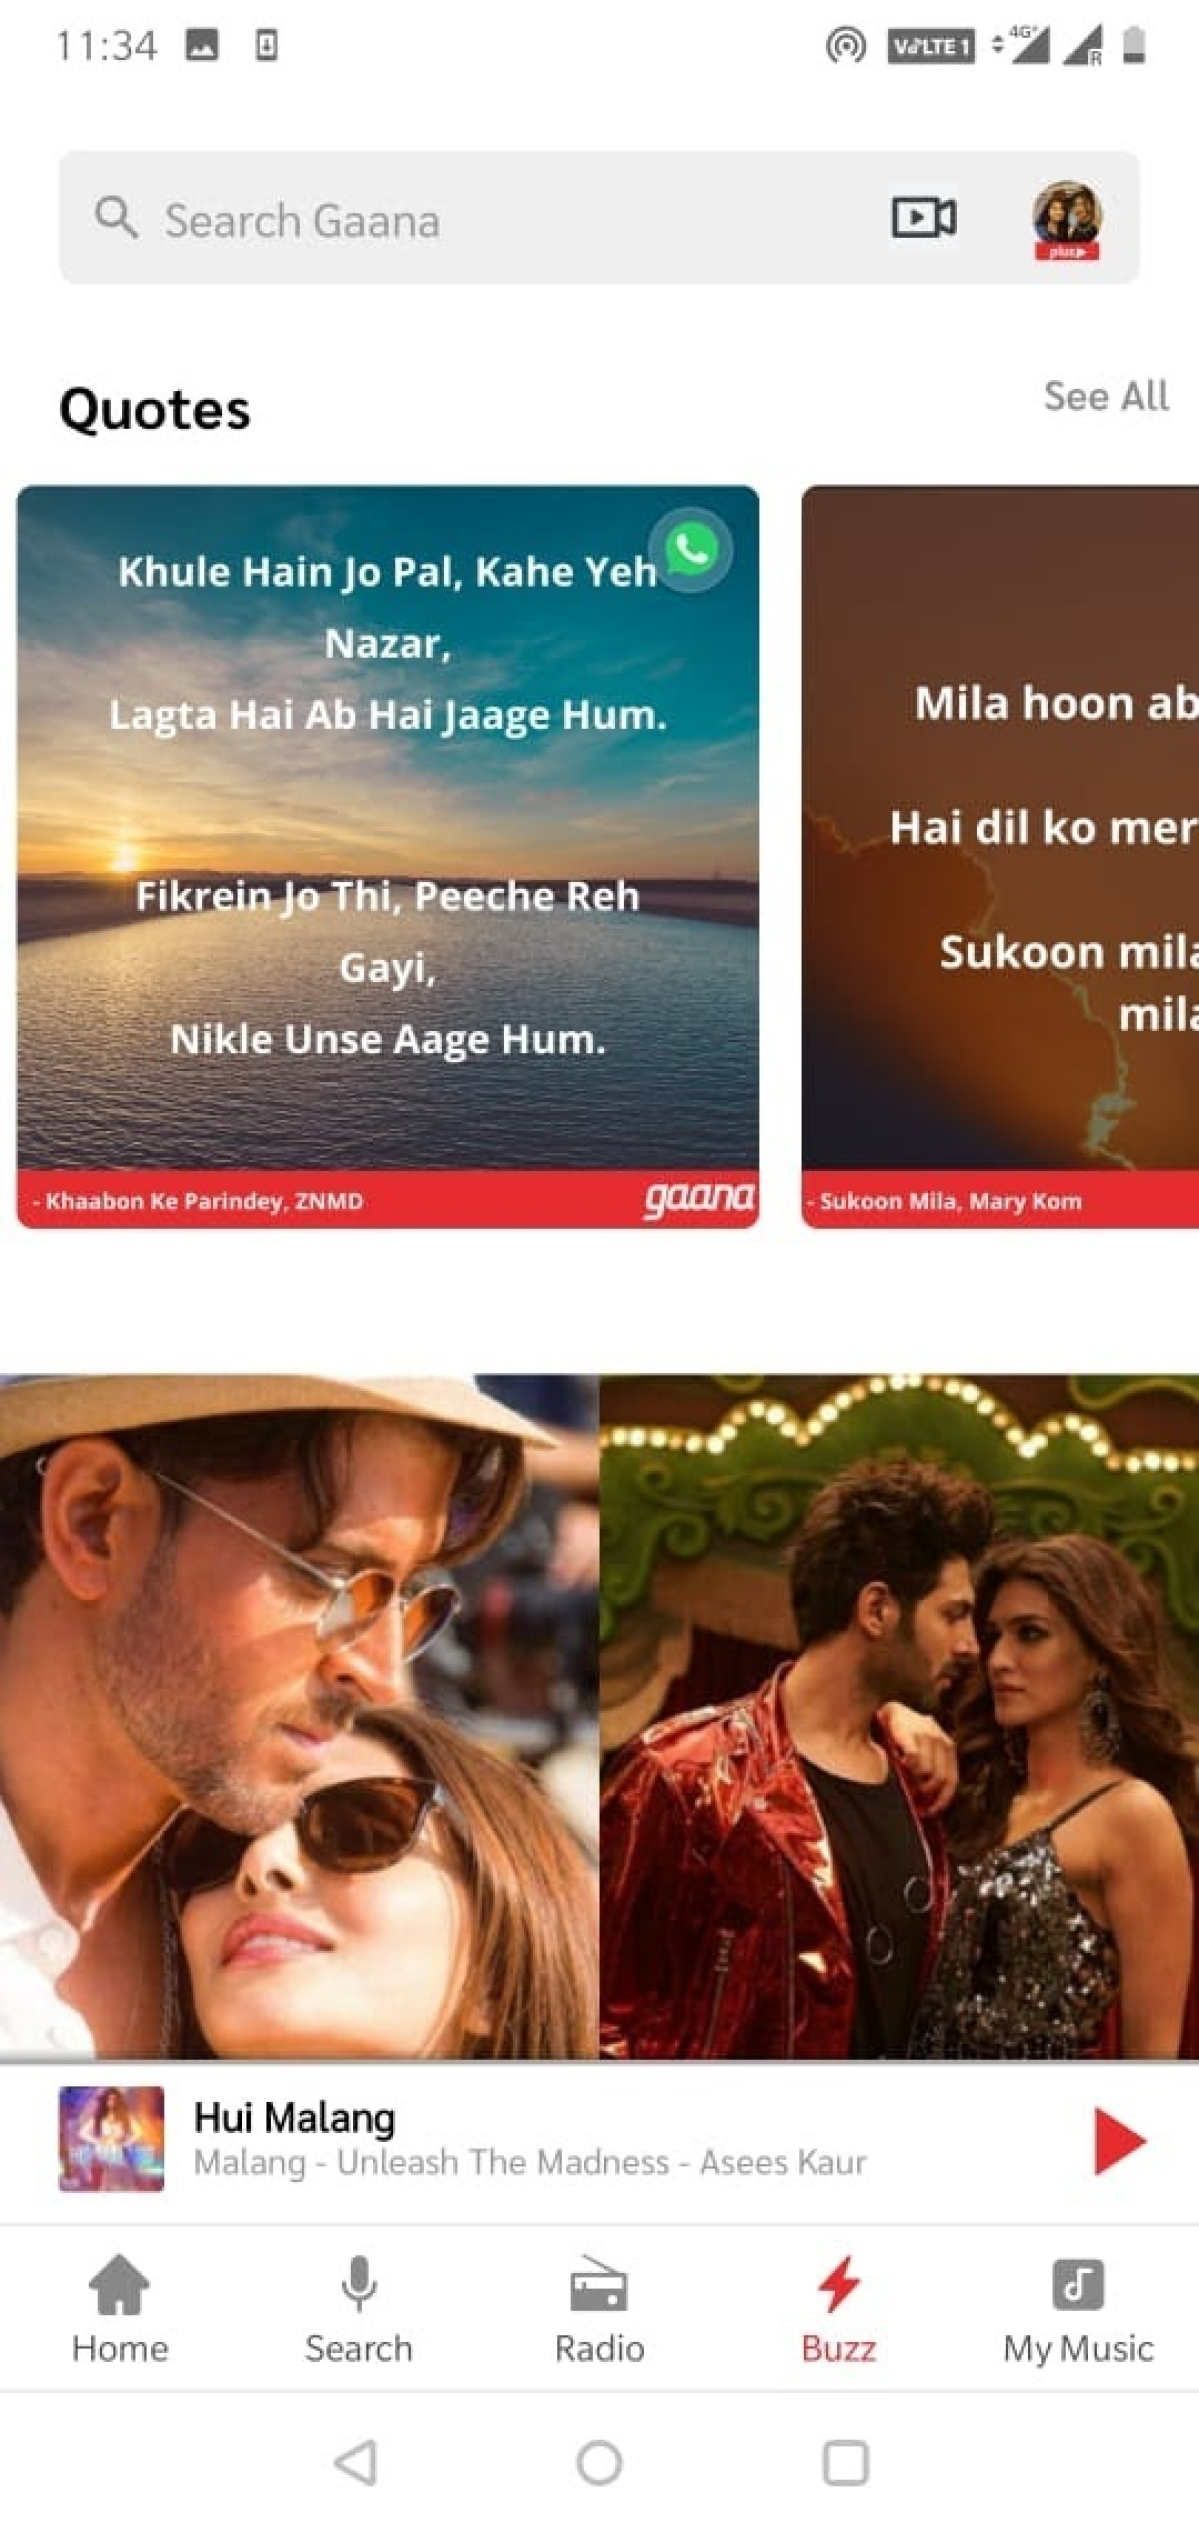 Gaana introduces 'Buzz'